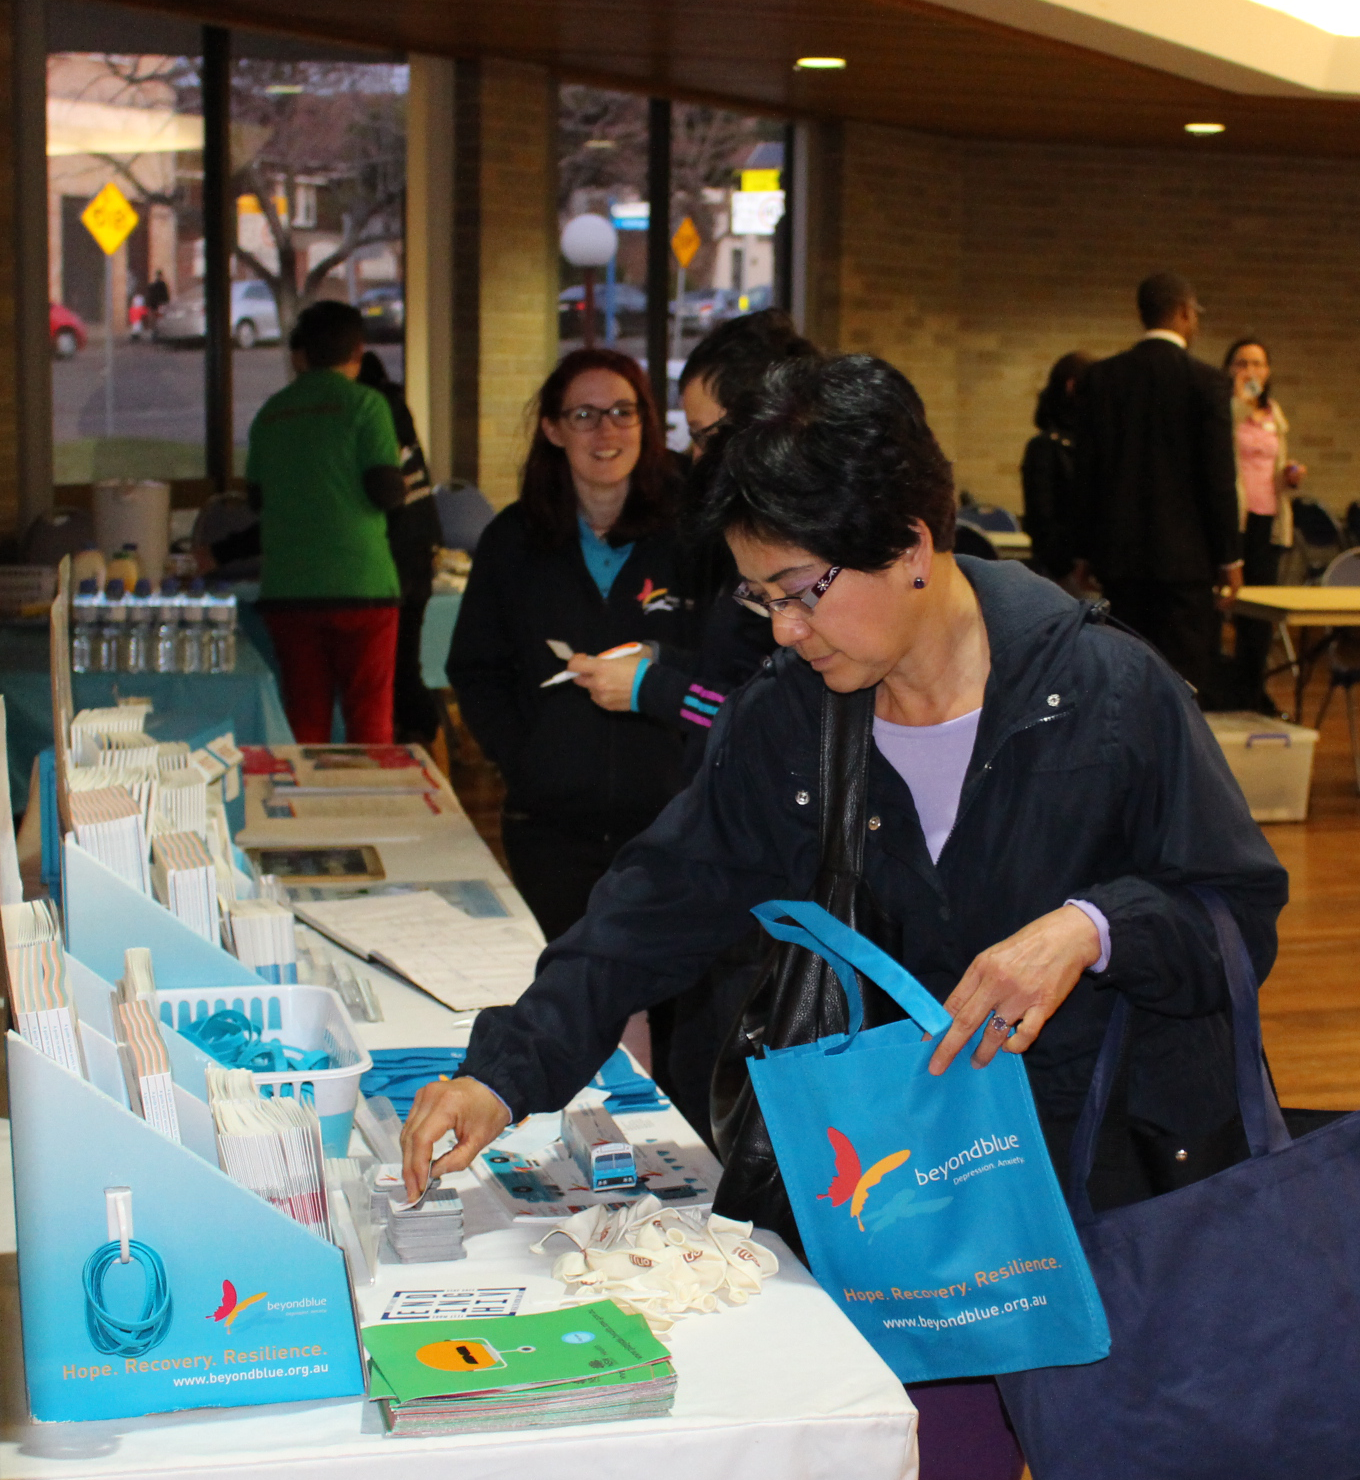 Checking out resources at the multicultural health expo at Lakemba Senior Citizen's Centre.